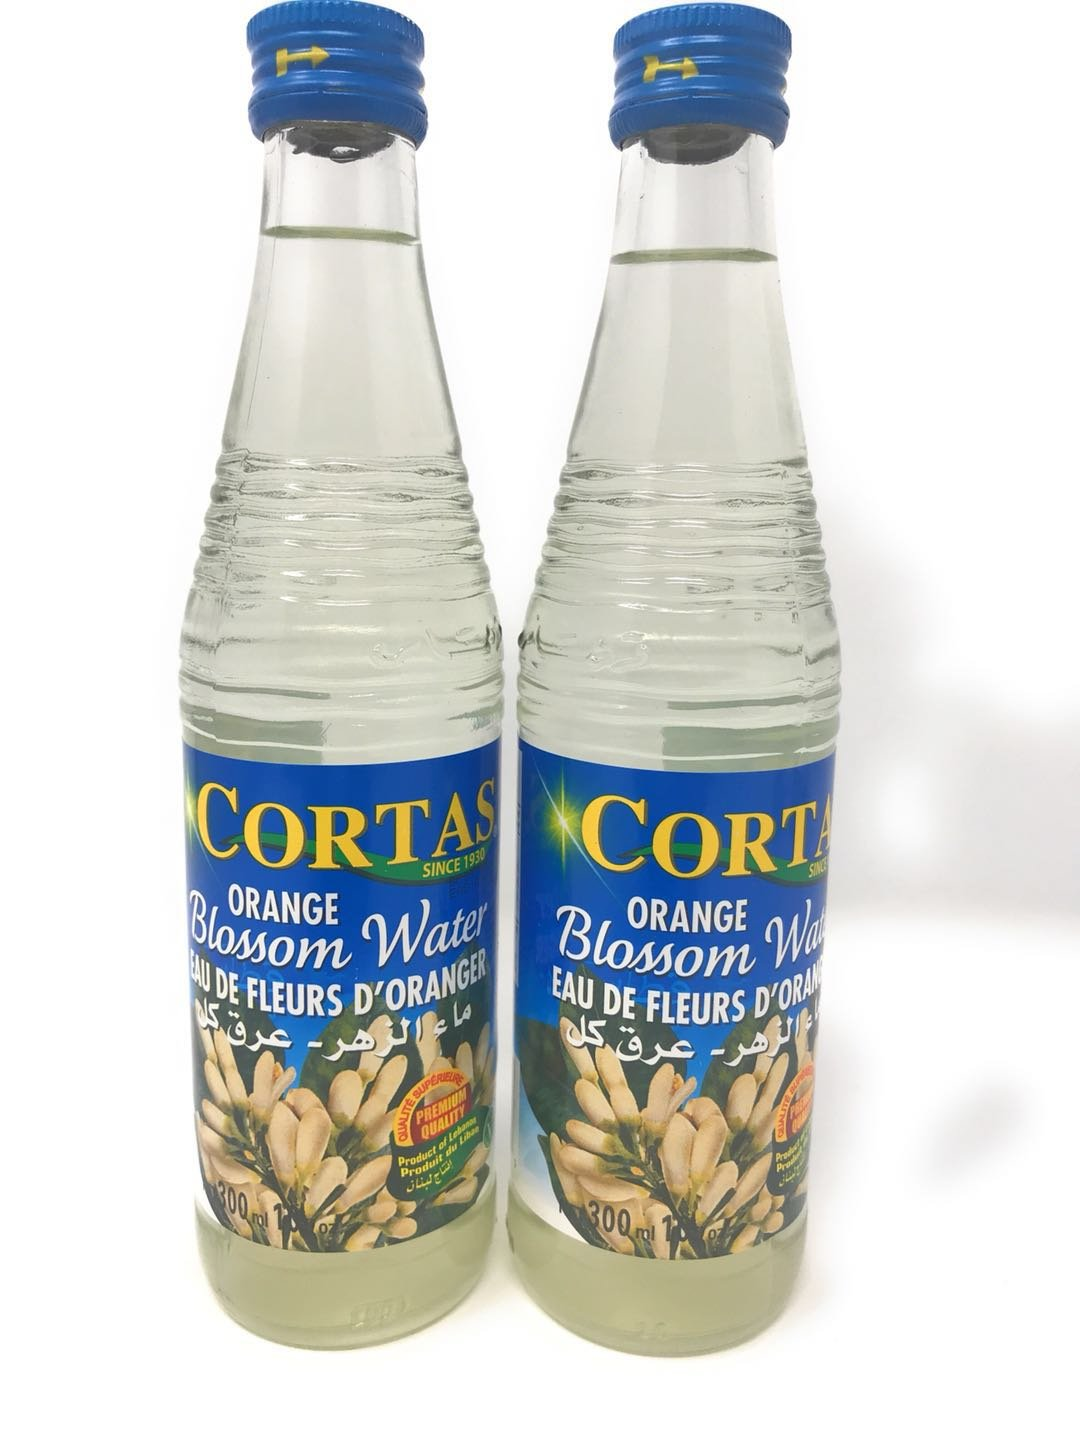 2 Packs Cortas Orange Blossom Water 10oz each by Fusion Select